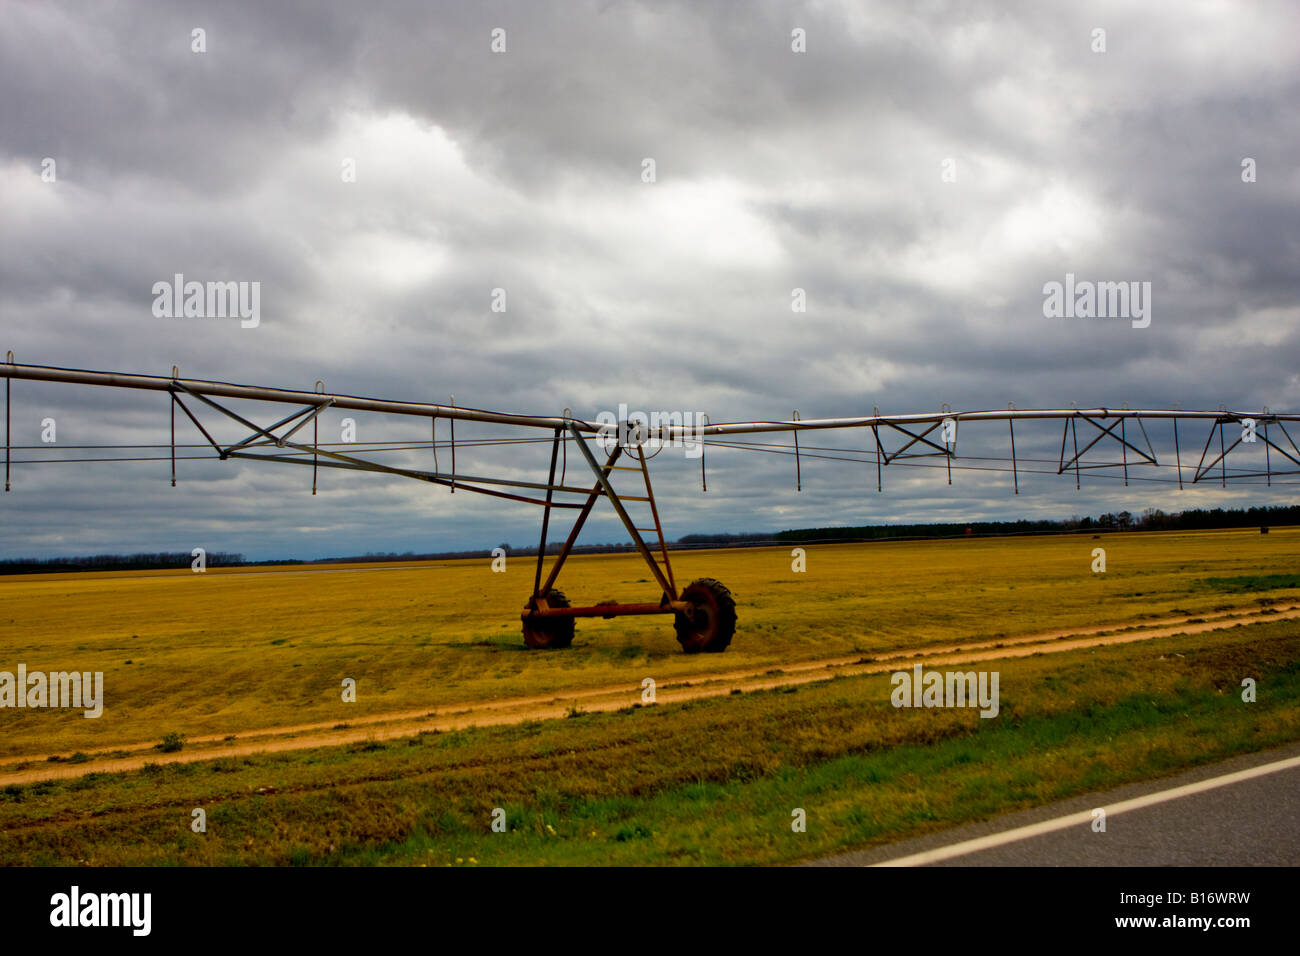 Farm Field and a Center Pivot Irrigation System - Stock Image